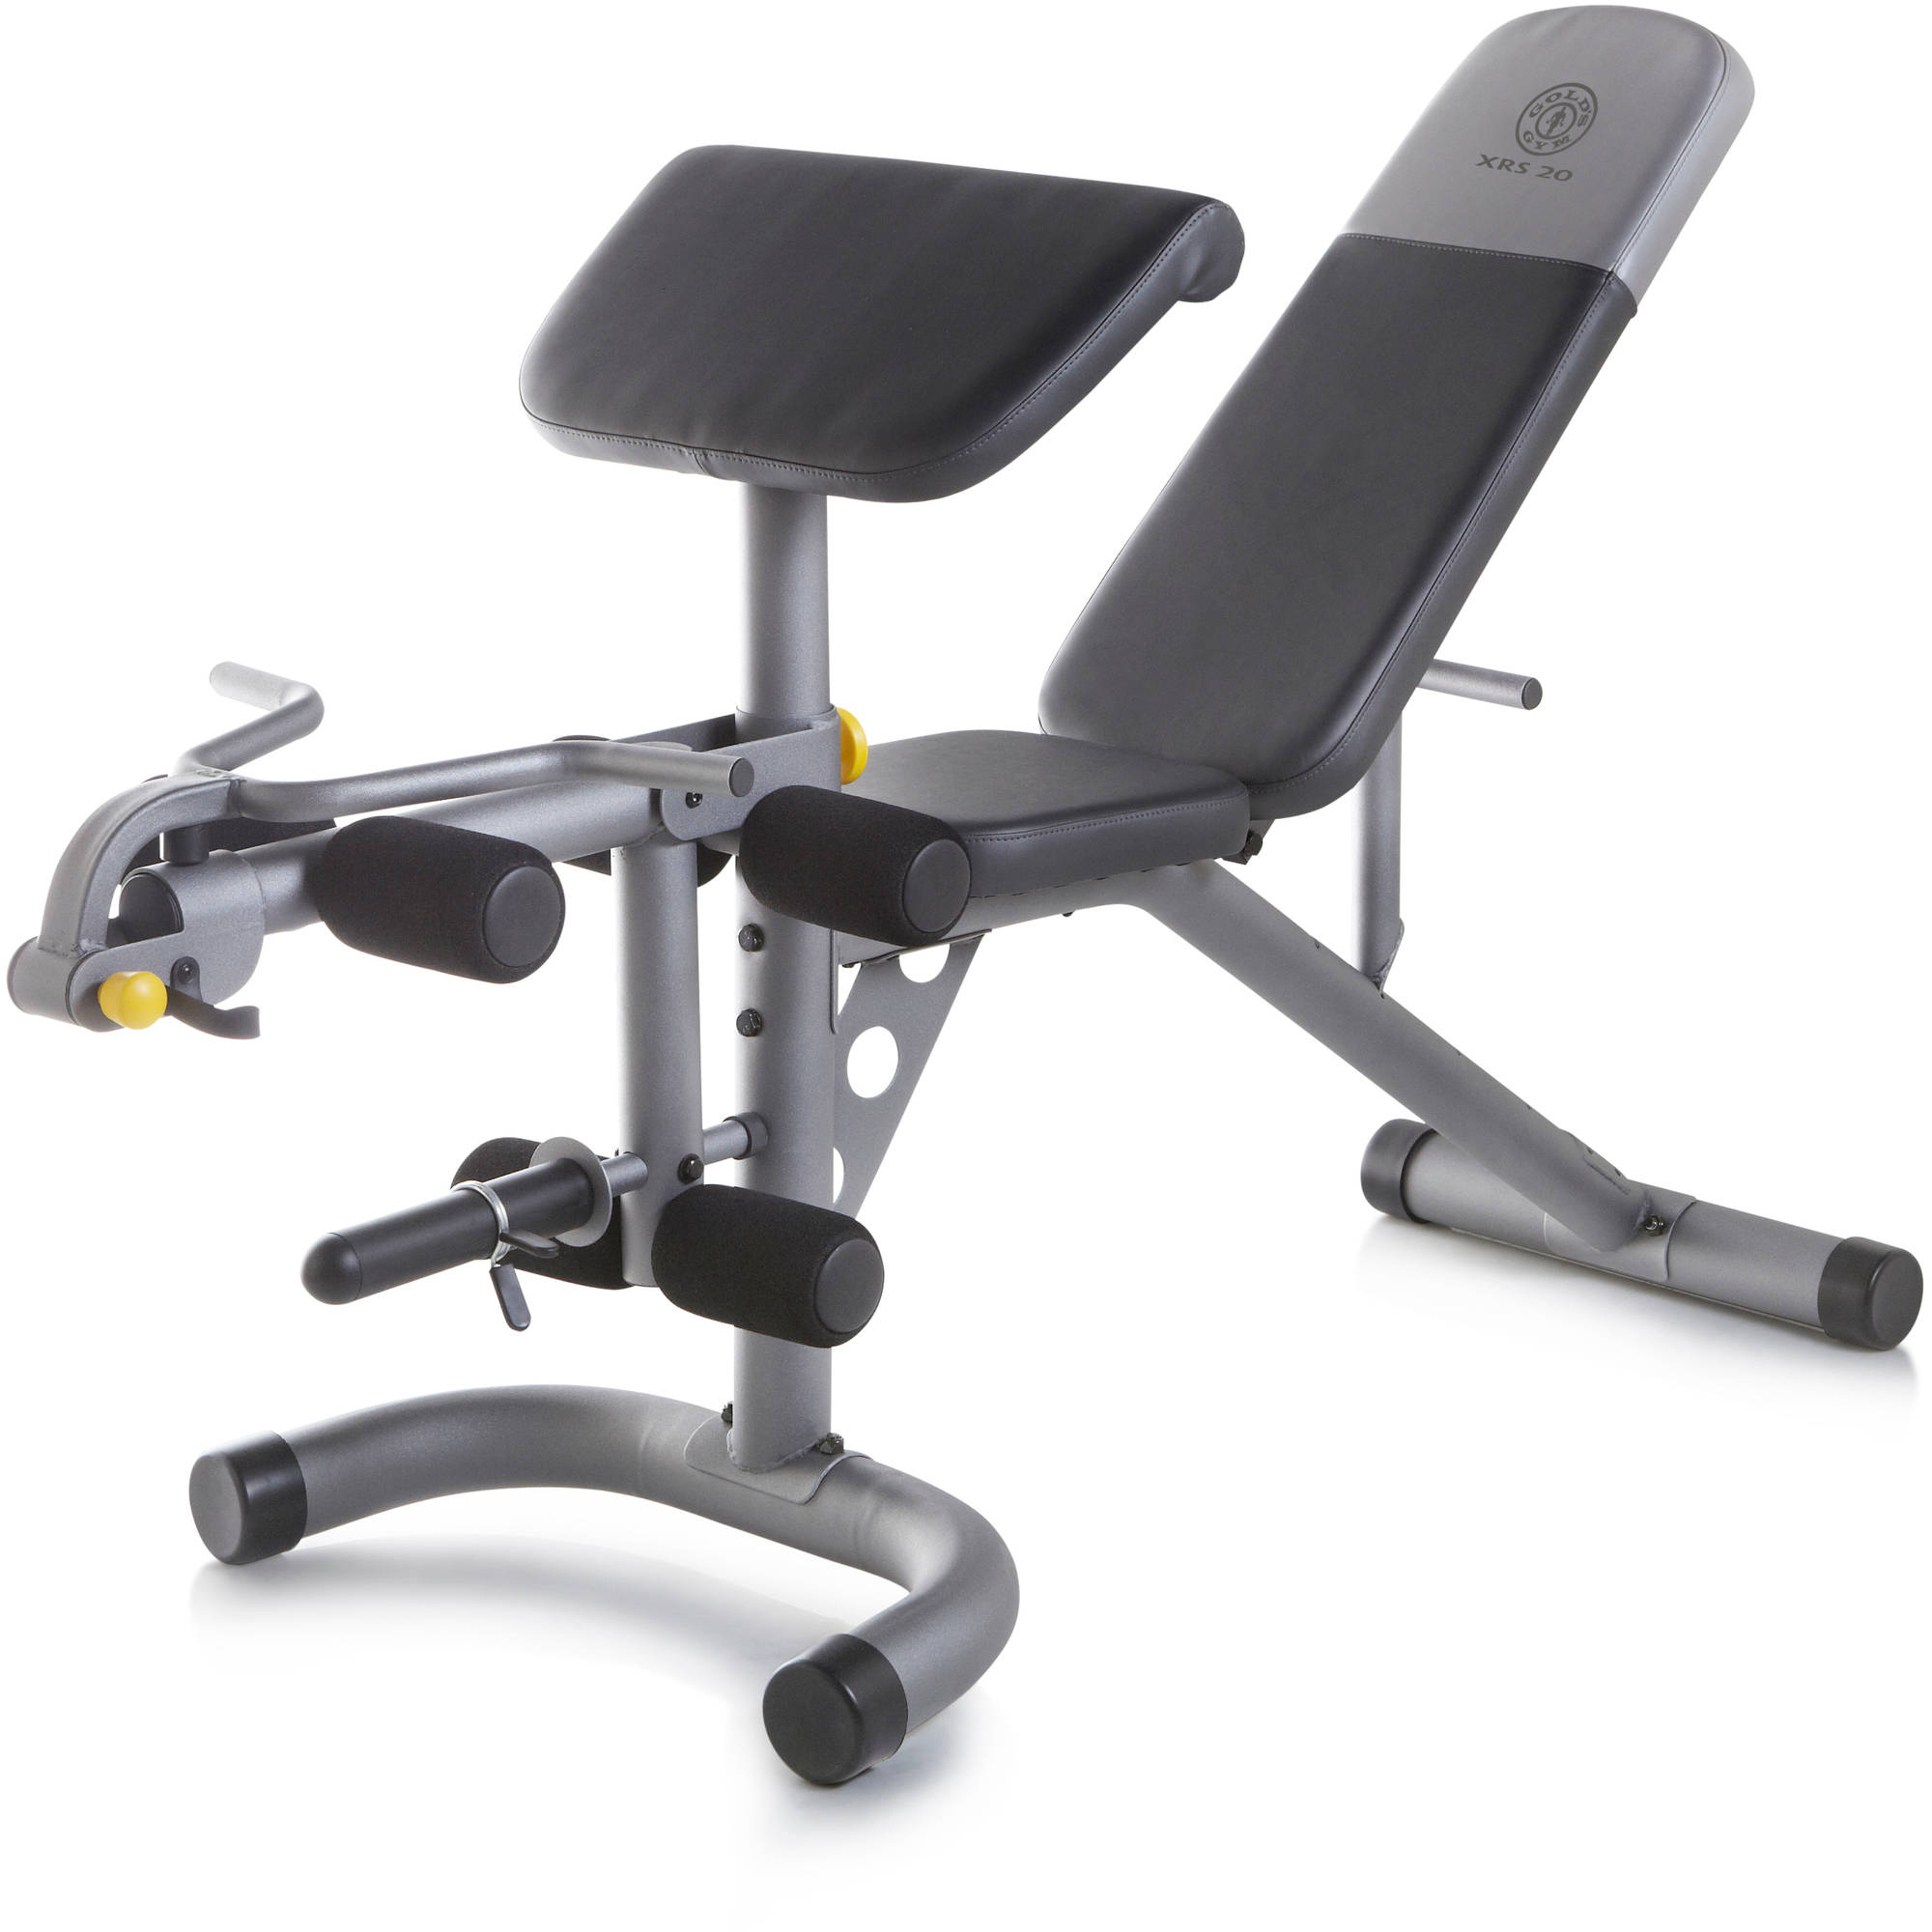 caroline olympic trends fitness astounding additional with fresh allen white exertec bench workout co militariart uk tips plus weight set chair benches com